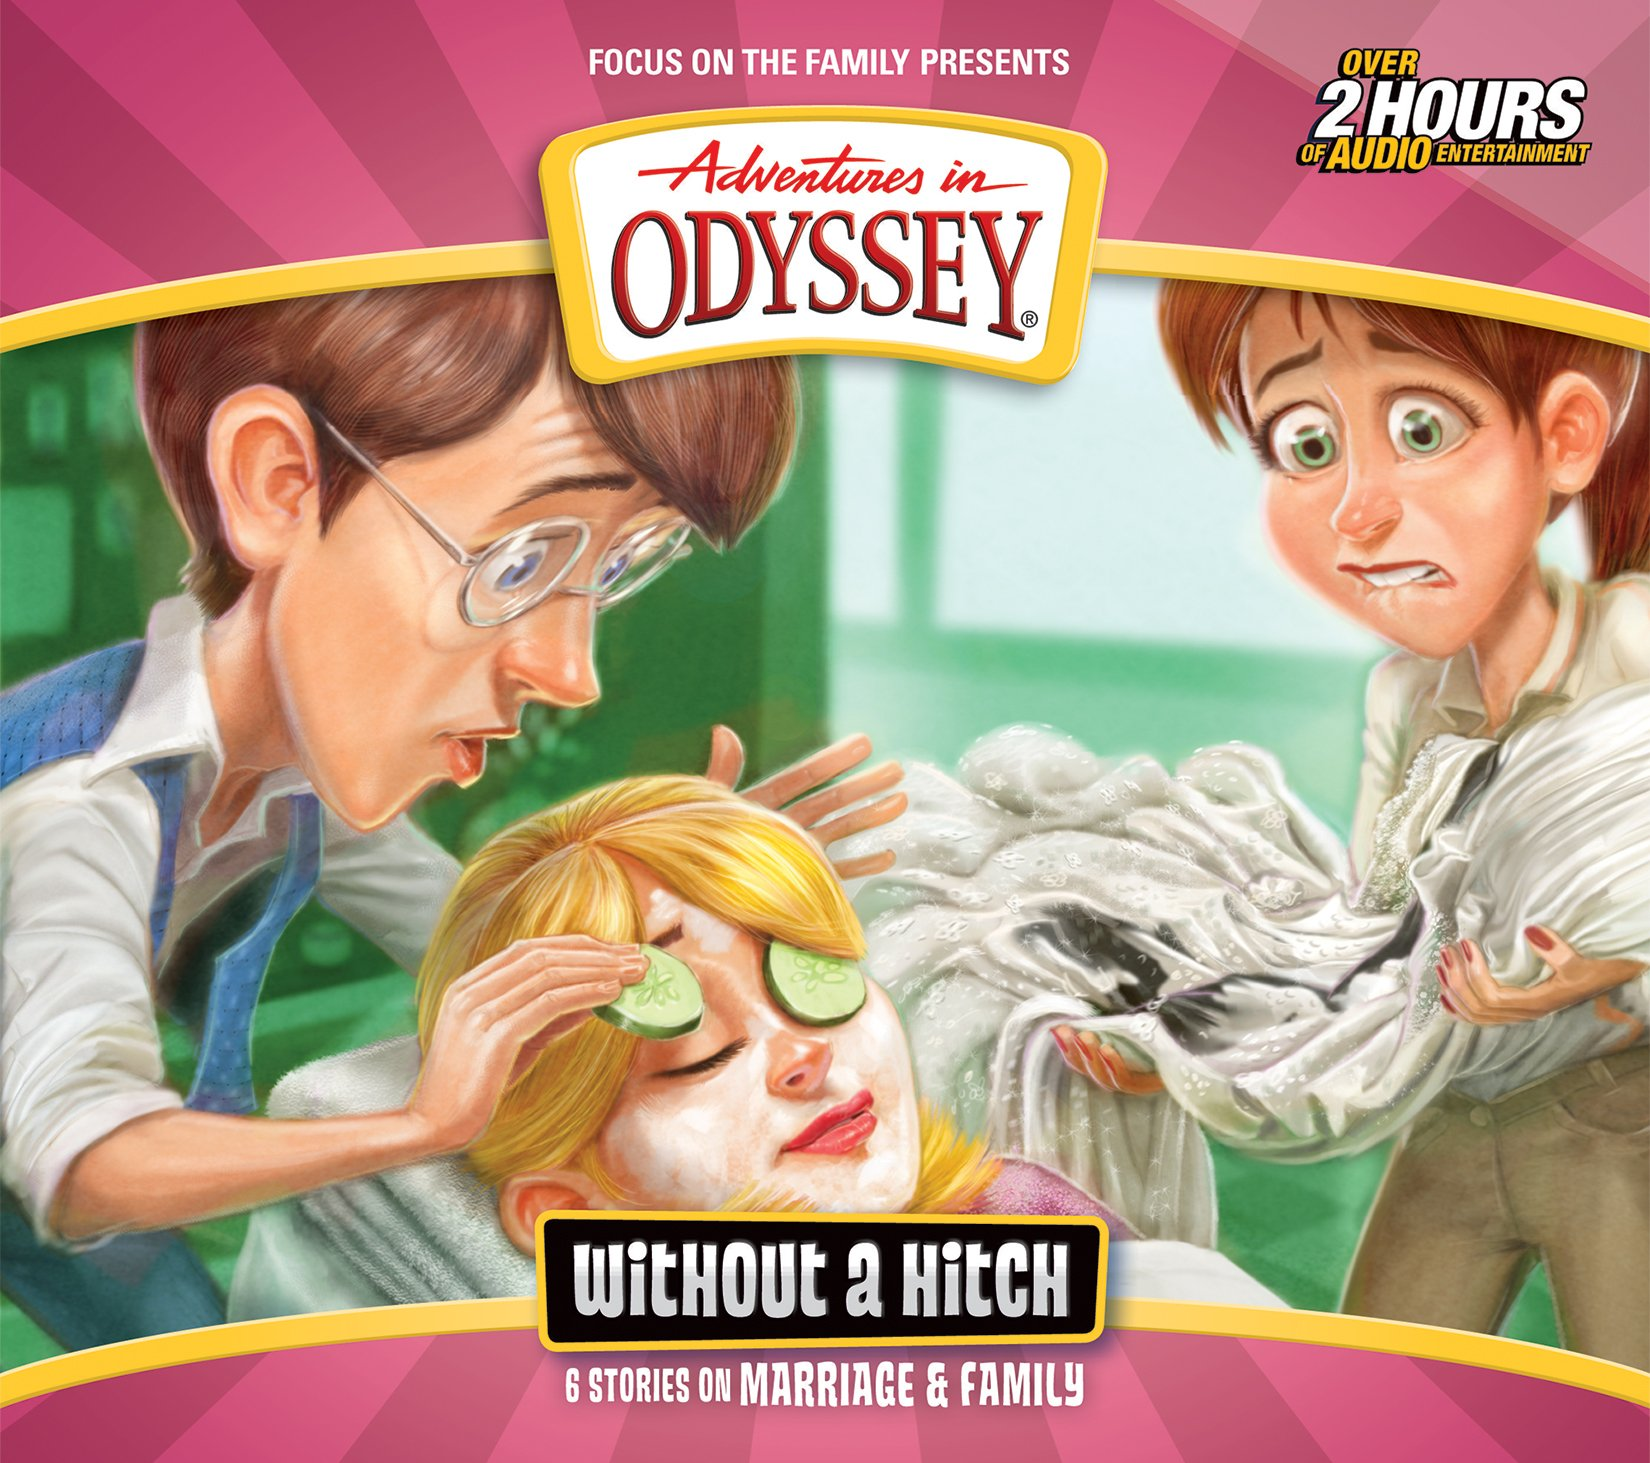 Without a Hitch: 6 Stories on Marriage & Family (Adventures in Odyssey) by Tyndale House Publishers (Image #1)